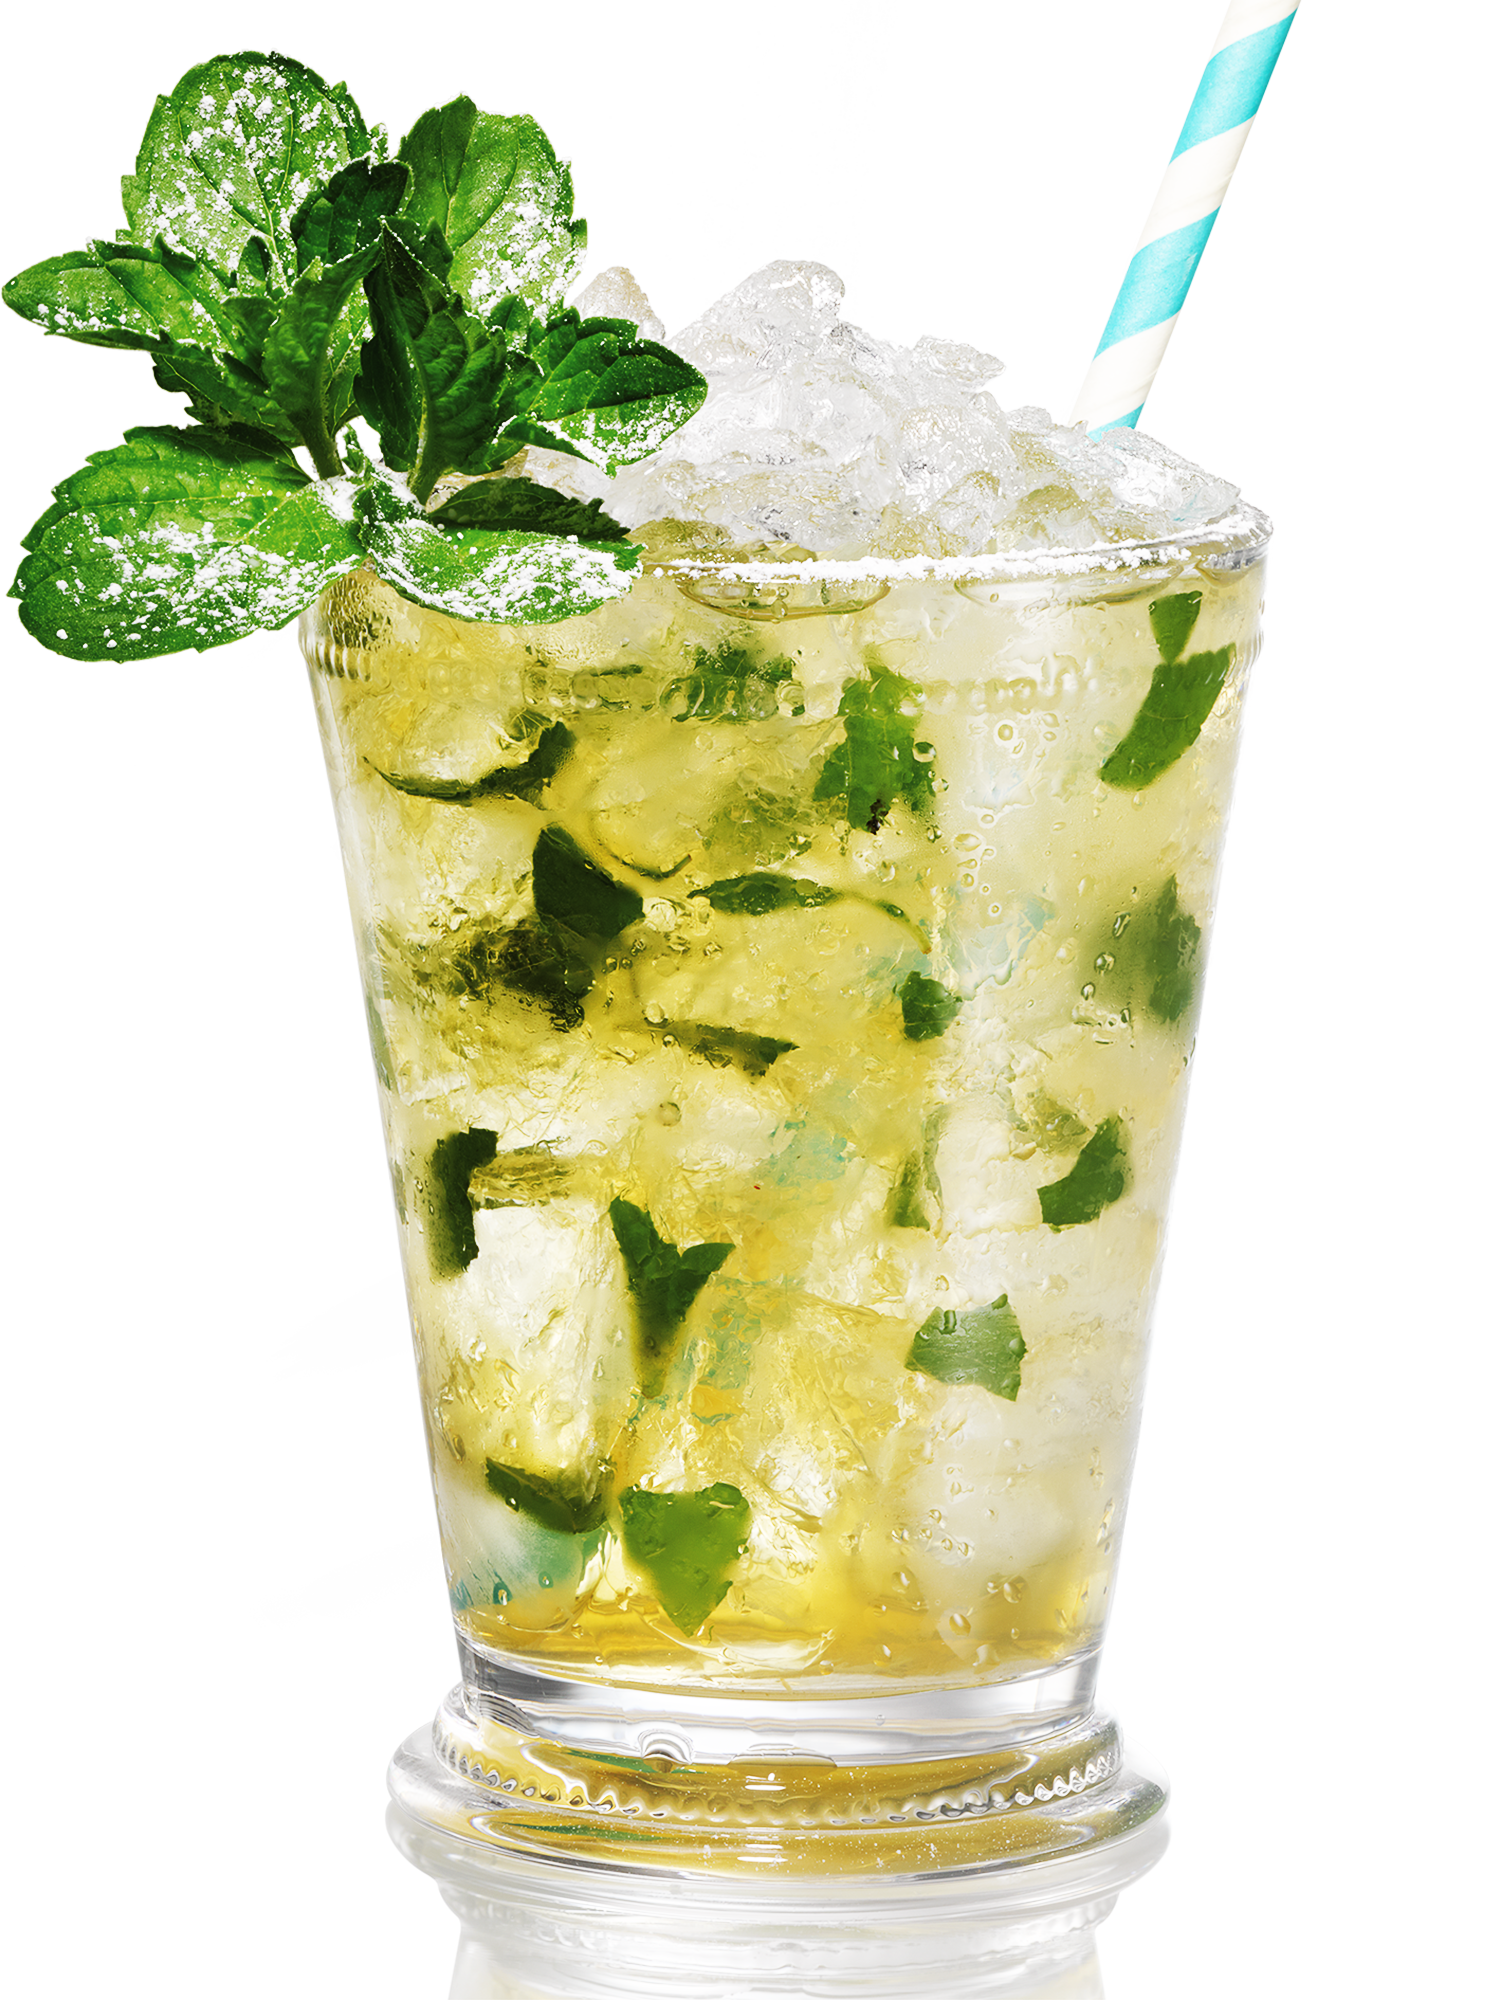 Mint Juleps: Five ways to make the Derby classic   SI.com